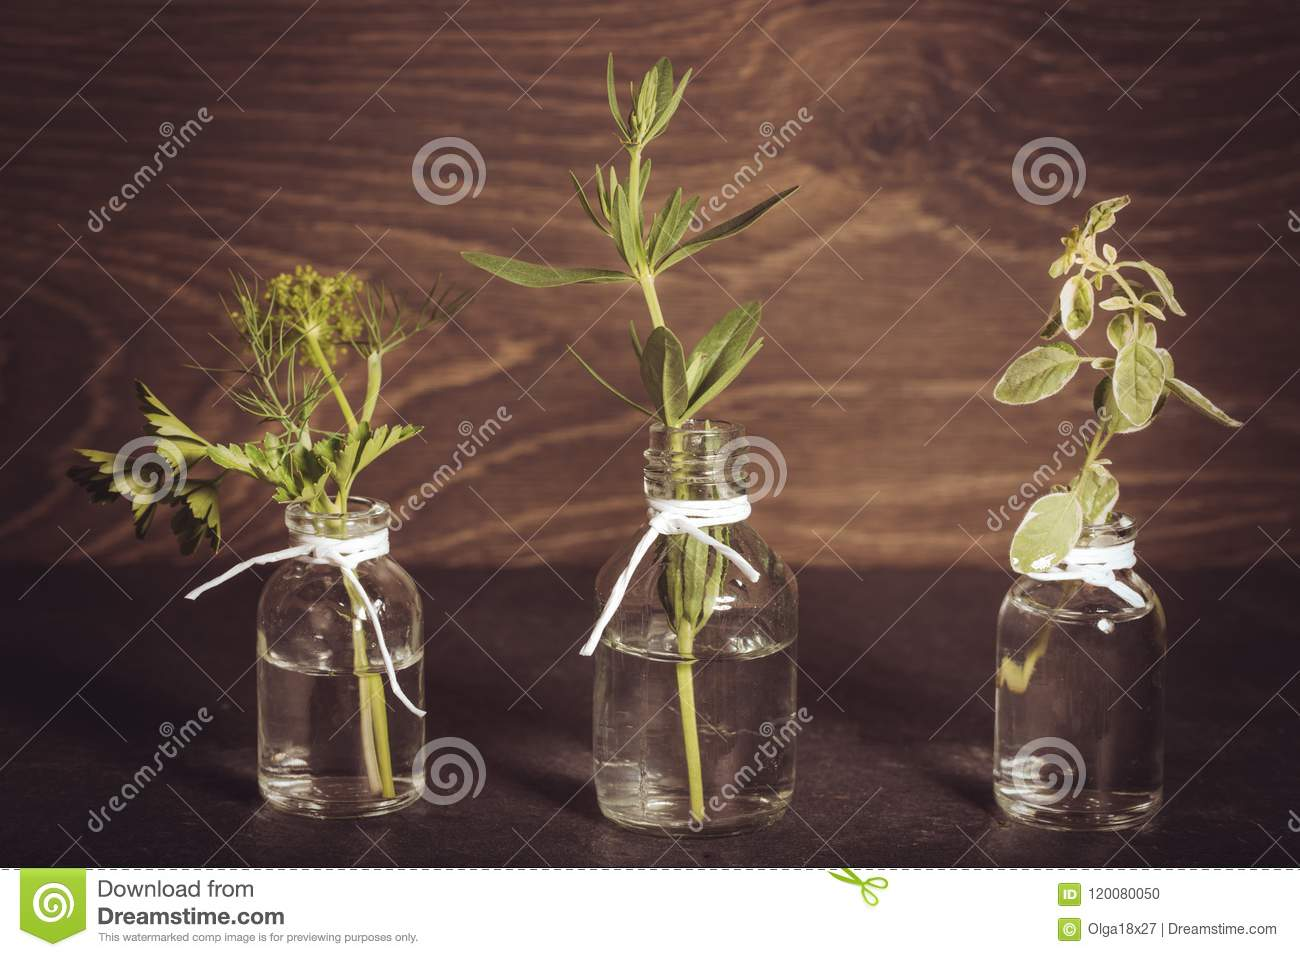 A bottle of essential oil with herbs, parsley, thyme, dill, hyssop, set on an old wooden background. Cooking, alternative medicine